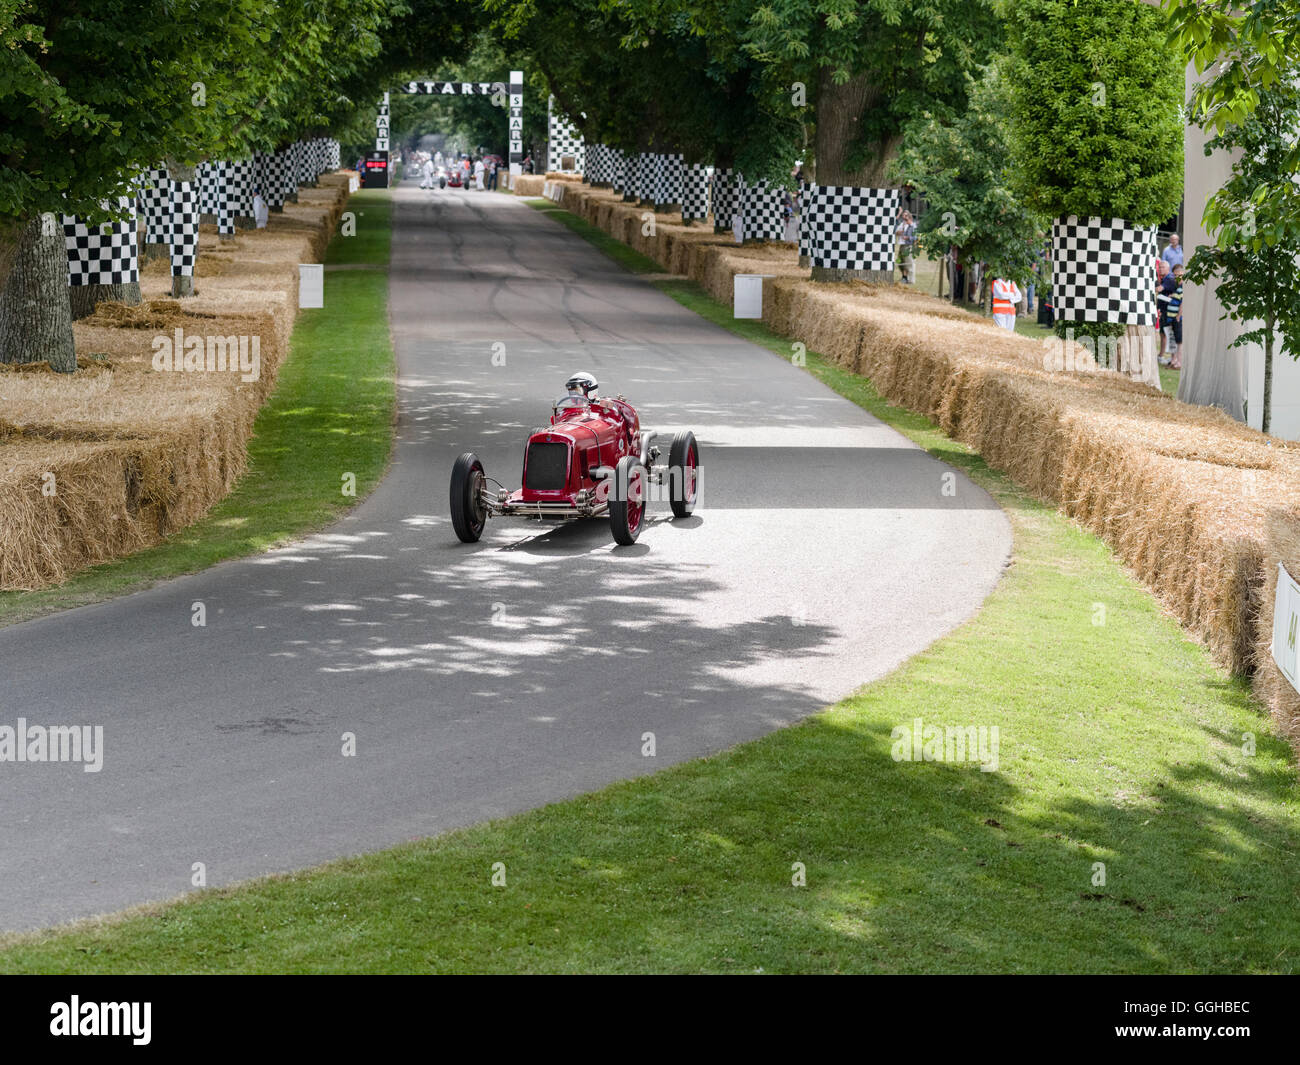 1933 Maserati 8CM, Goodwood Festival of Speed 2014, racing, car racing, classic car, Chichester, Sussex, United - Stock Image